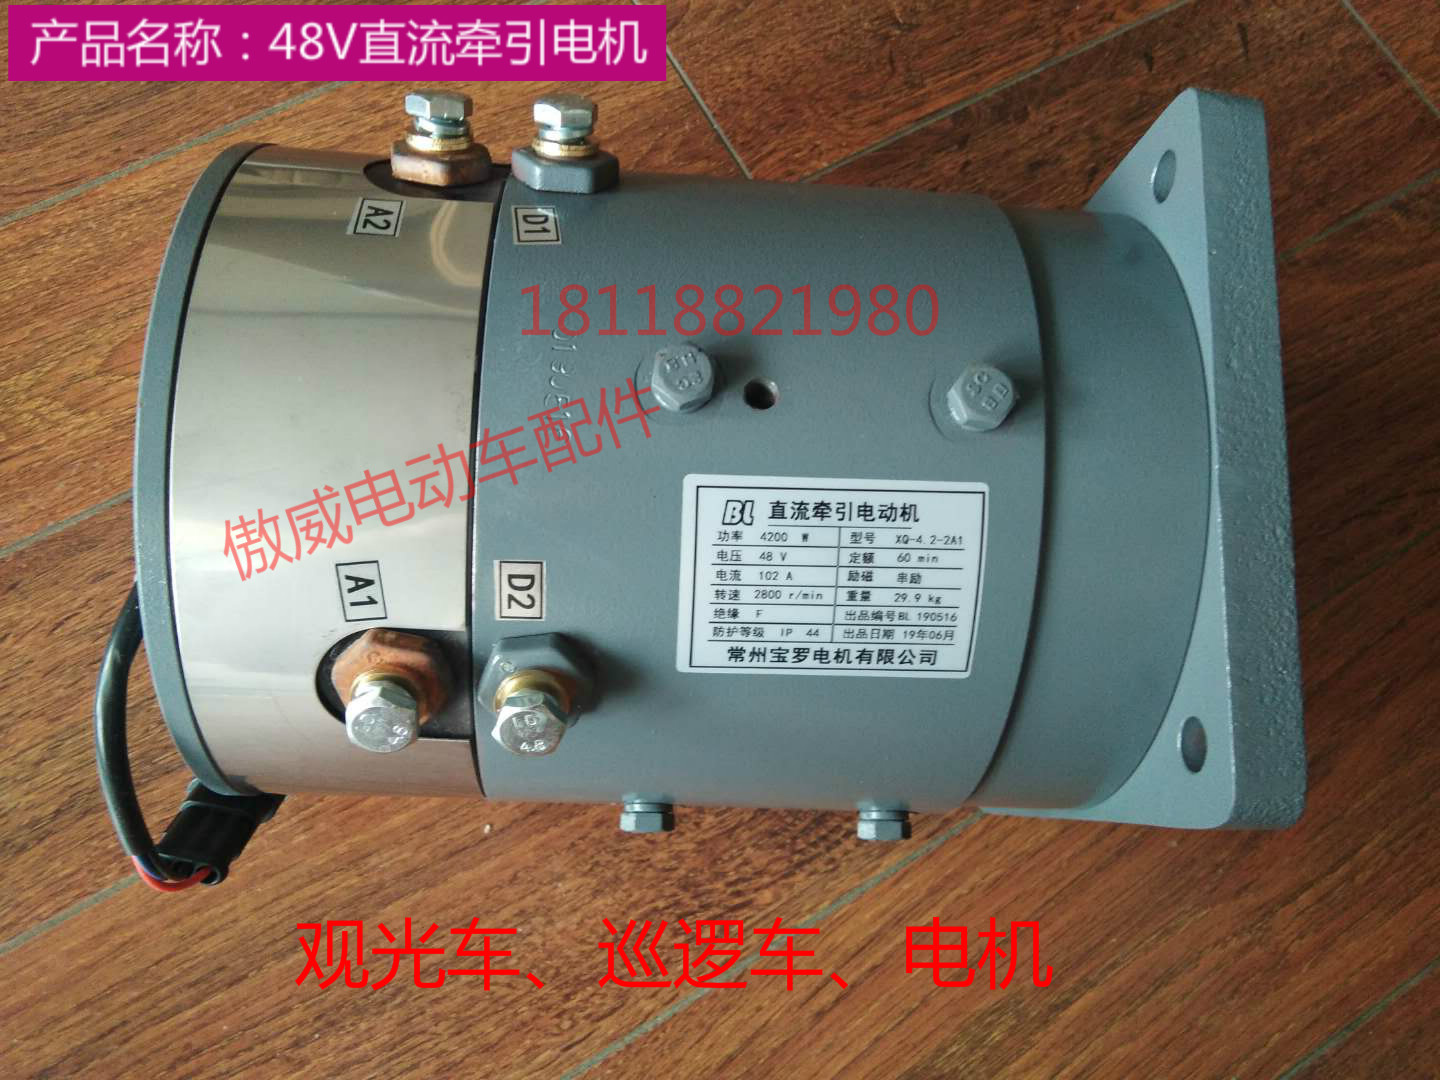 48V 4.2KW 2800RPM Electric Sightseeing Car, Patrol Car Motor, XQ-4.2-2A1 DC Traction Motor